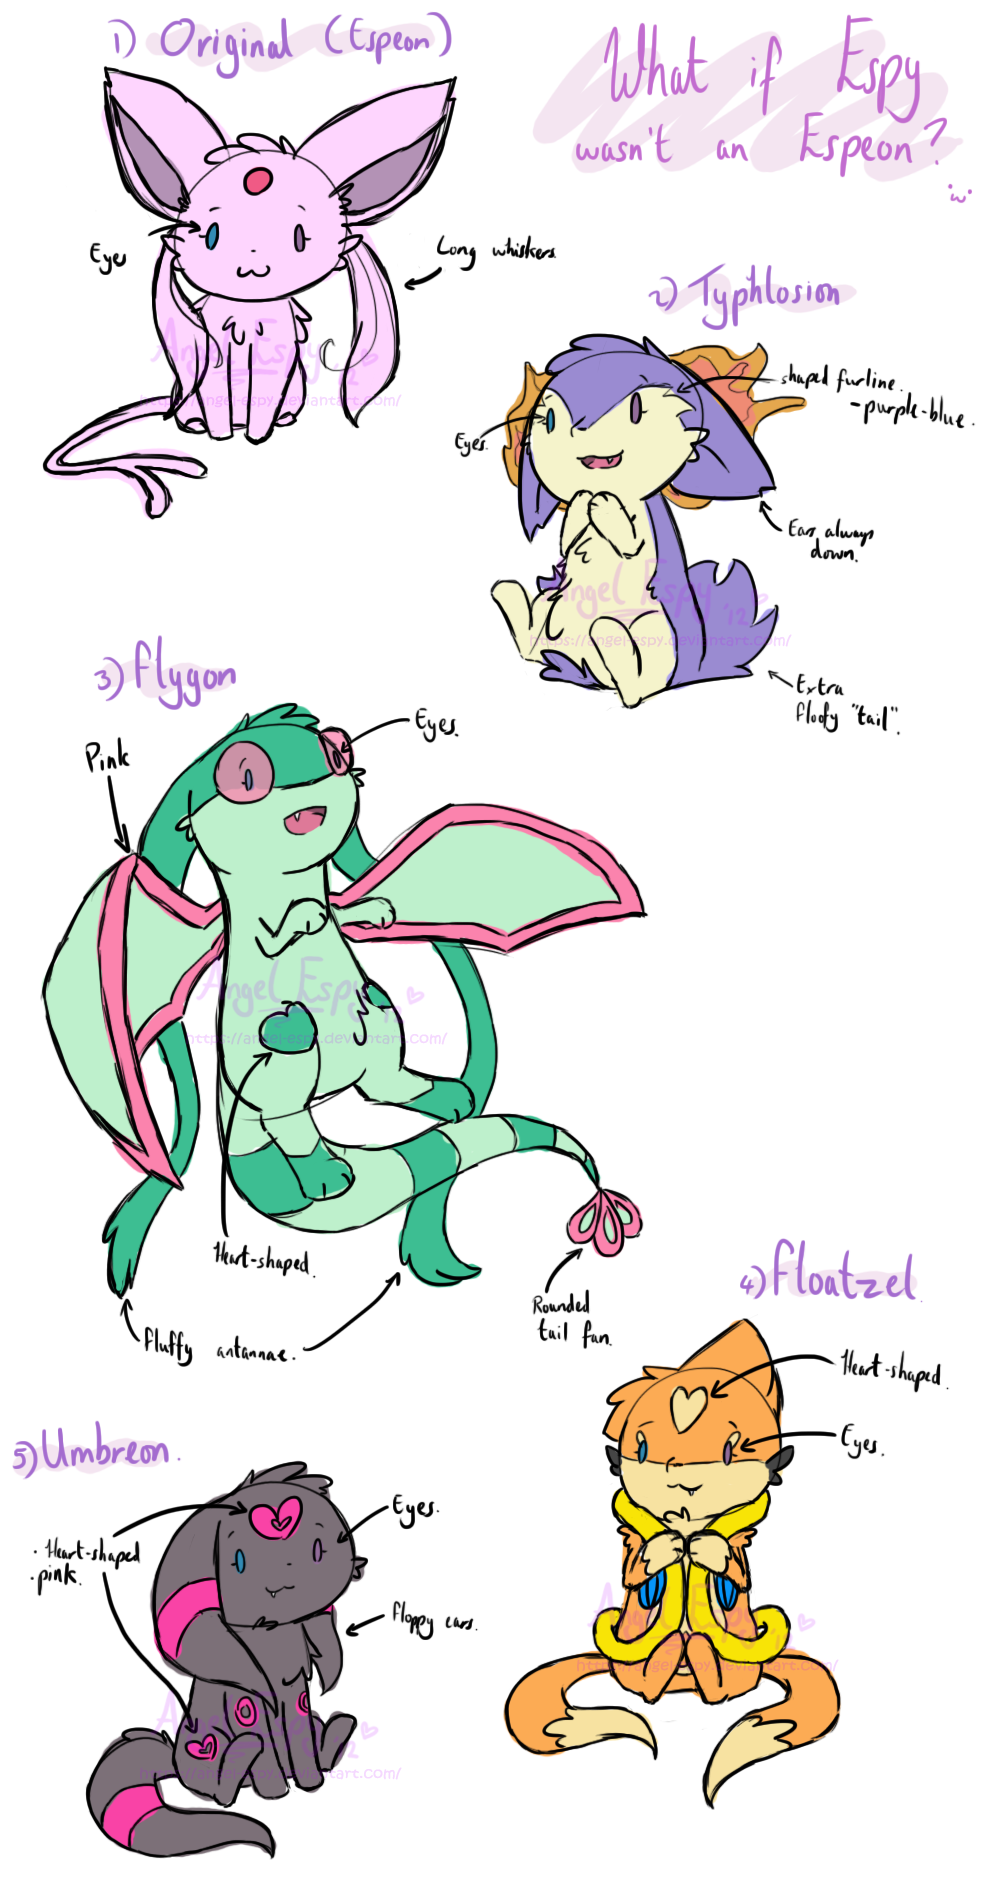 Espy: Alternate Forms? by Espyfluff on DeviantArt